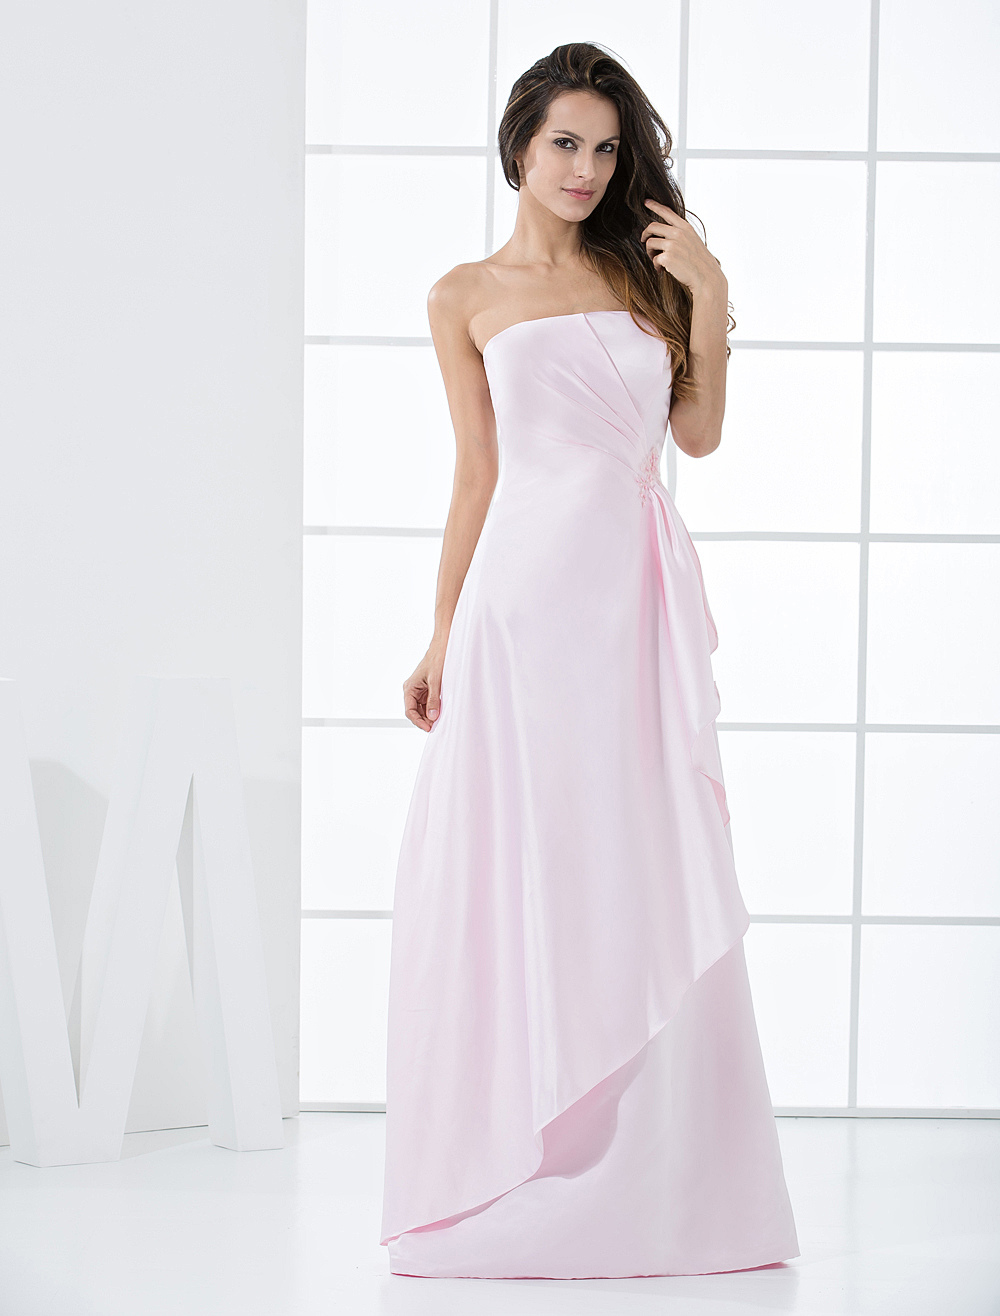 Pink Strapless Satin Floor Length Bridesmaid Dress